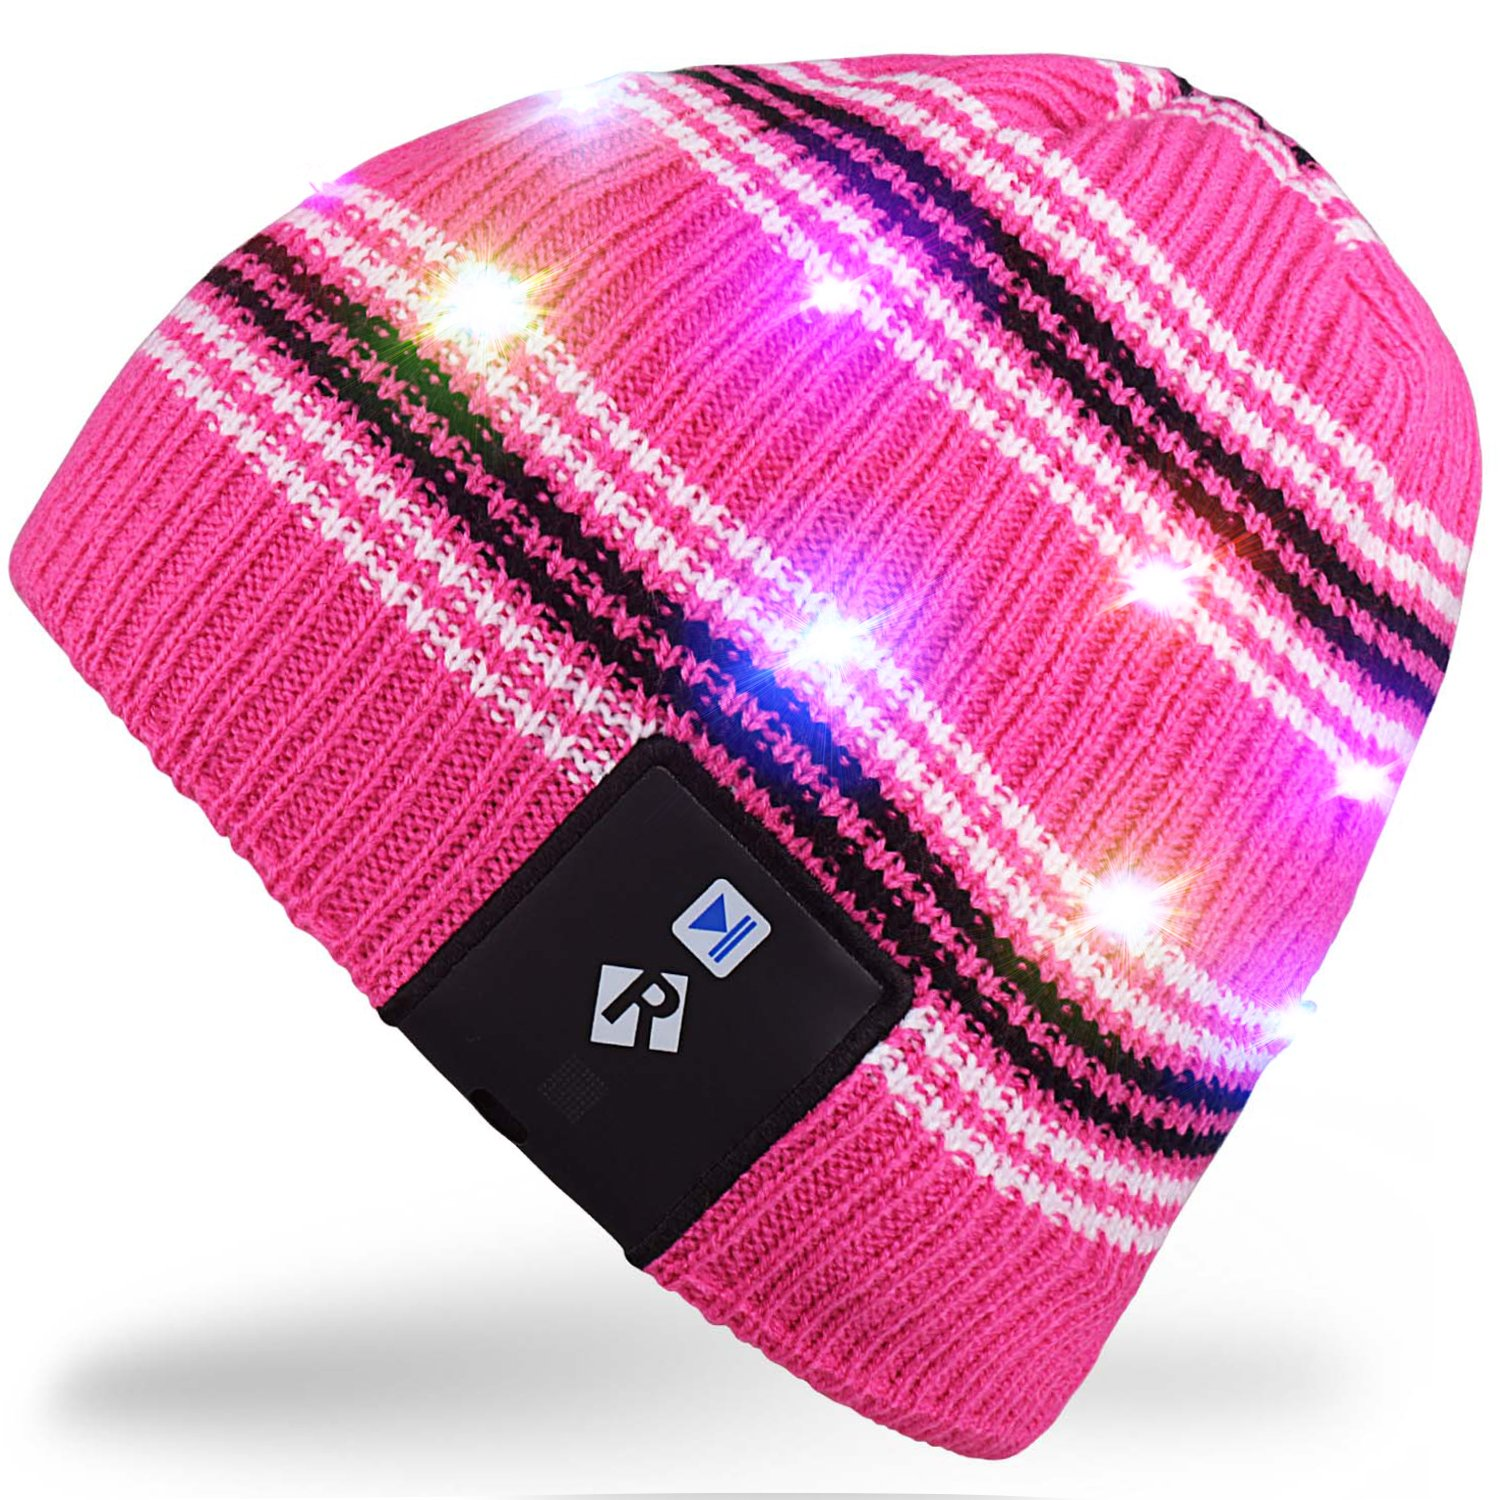 Rotibox Elegante LED String Light Up cappello Beanie cappello a maglia con  fili di rame Luci colorate per Uomini Donne Indoor e Outdoor 6b3948cc50a9